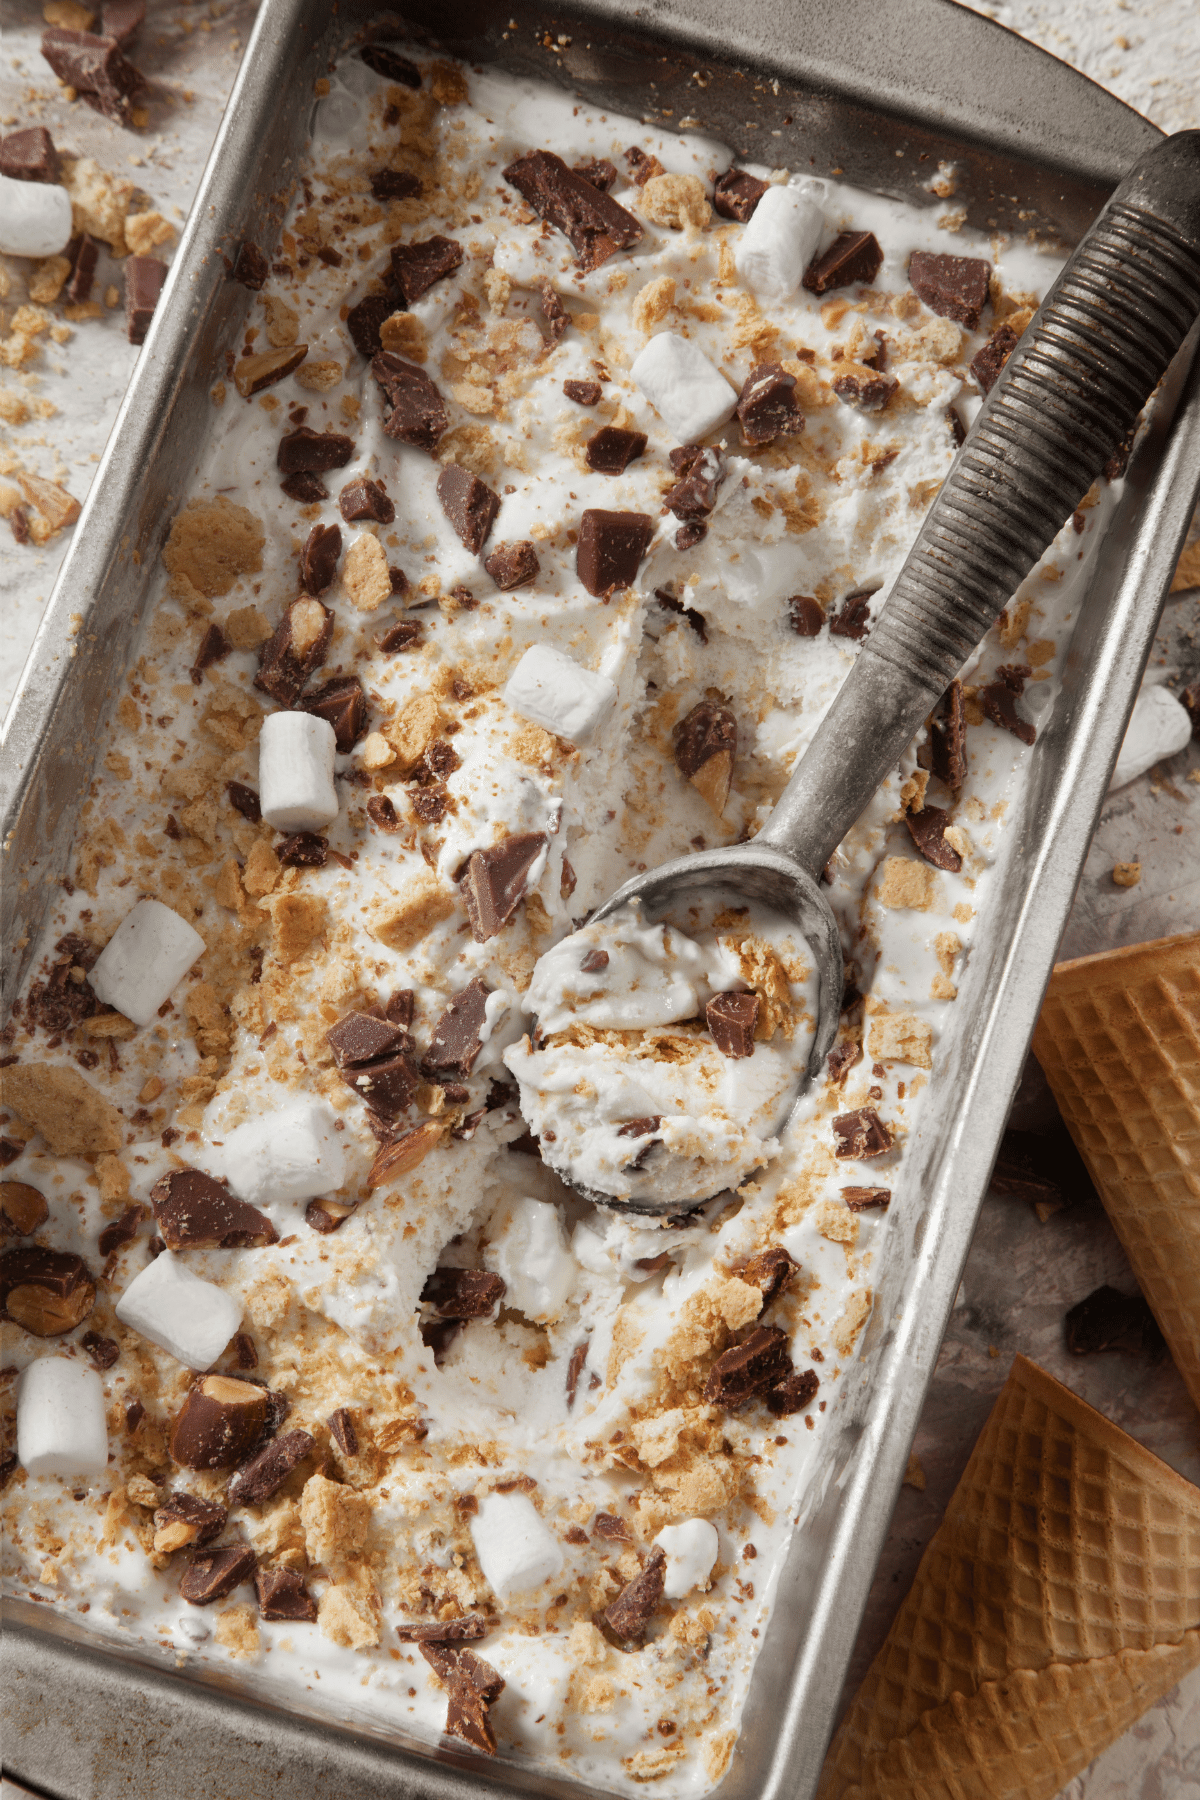 S'mores ice cream in a baking tray with an ice cream scooper and marshmallows and graham crackers sprinkled on top